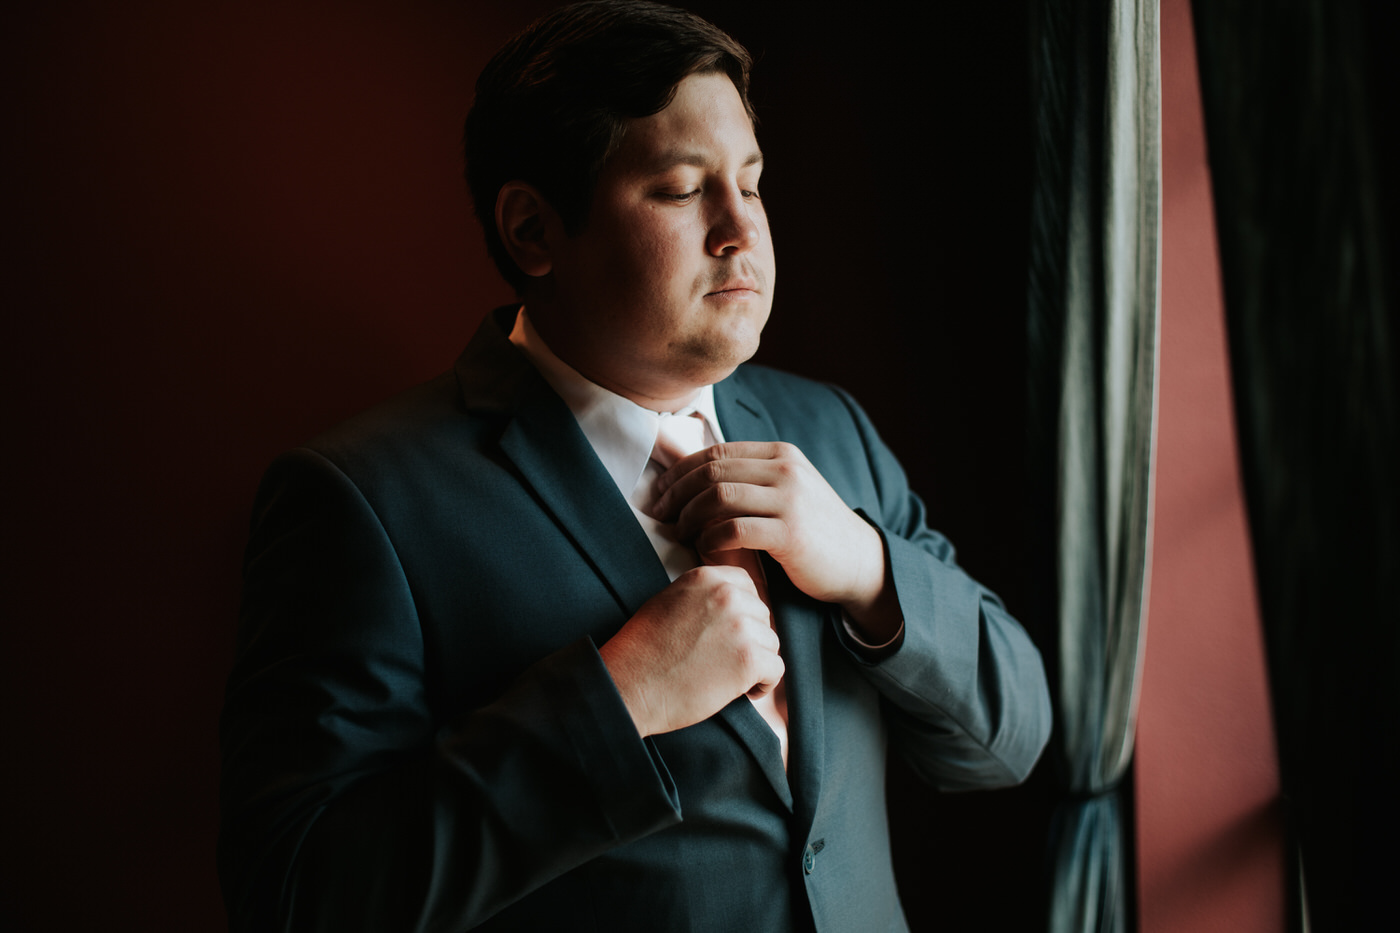 Groom getting ready at Thurman's mansion